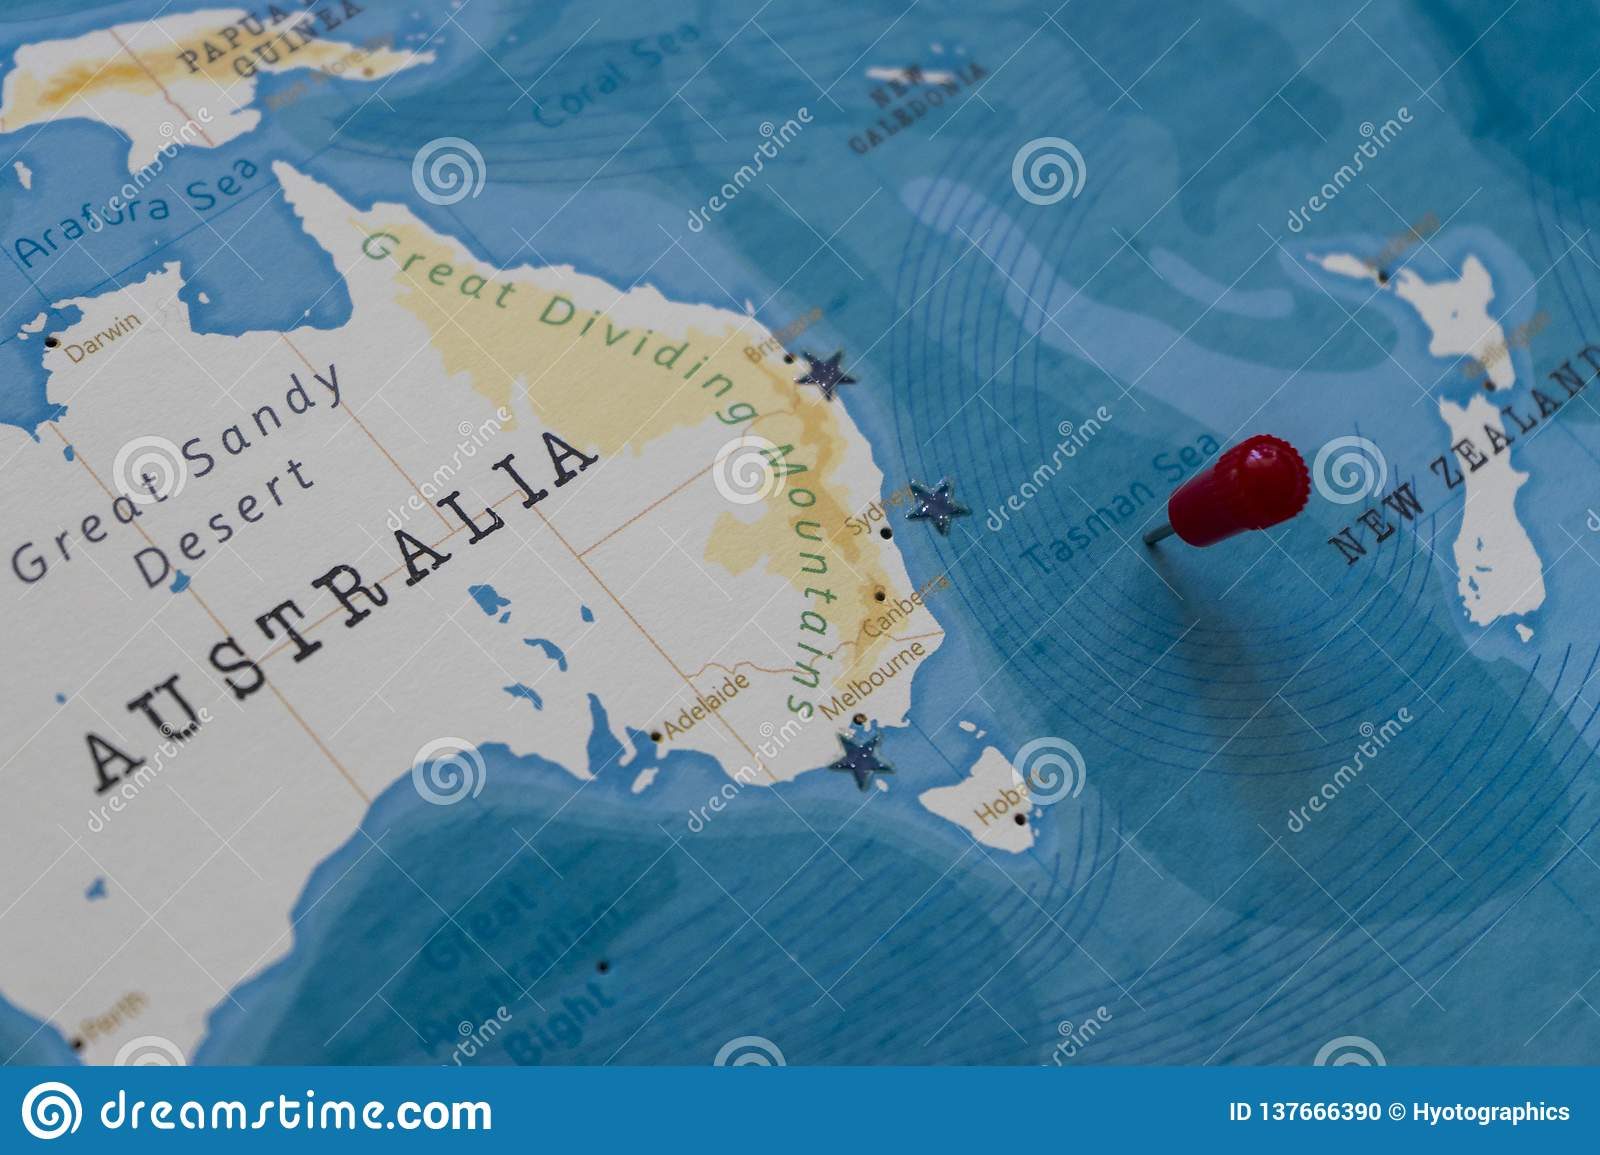 A Pin On Tasman Sea In The World Map Stock Photo - Image of graphic ...